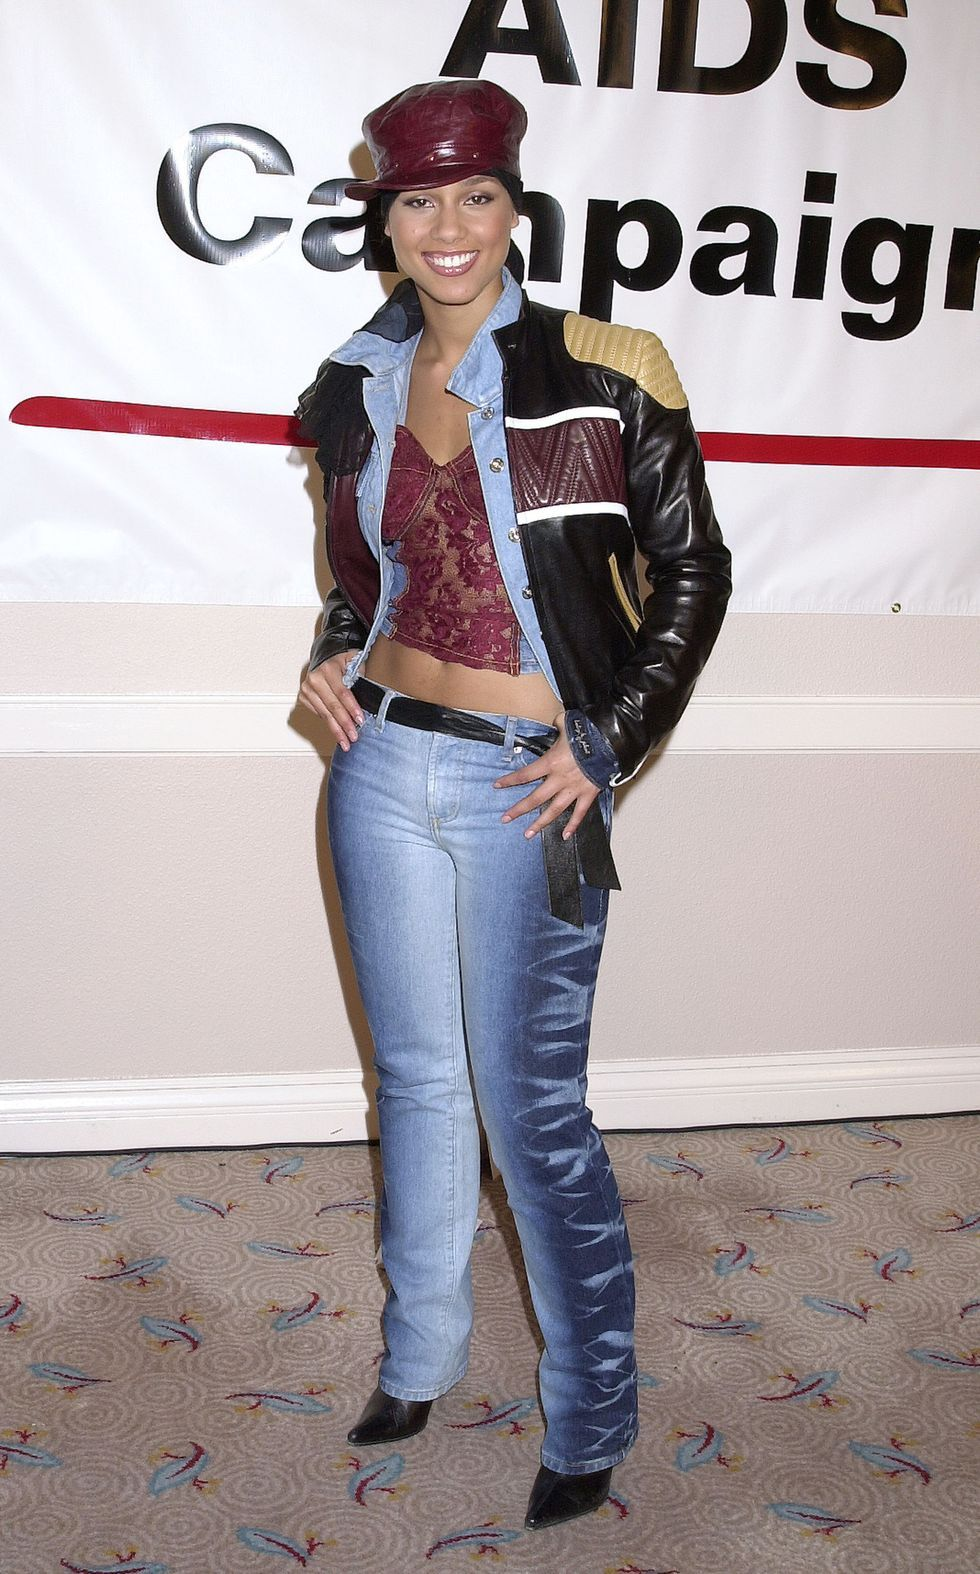 5 Outdated Fashion Trends - Photos of Celebs in Bad Style